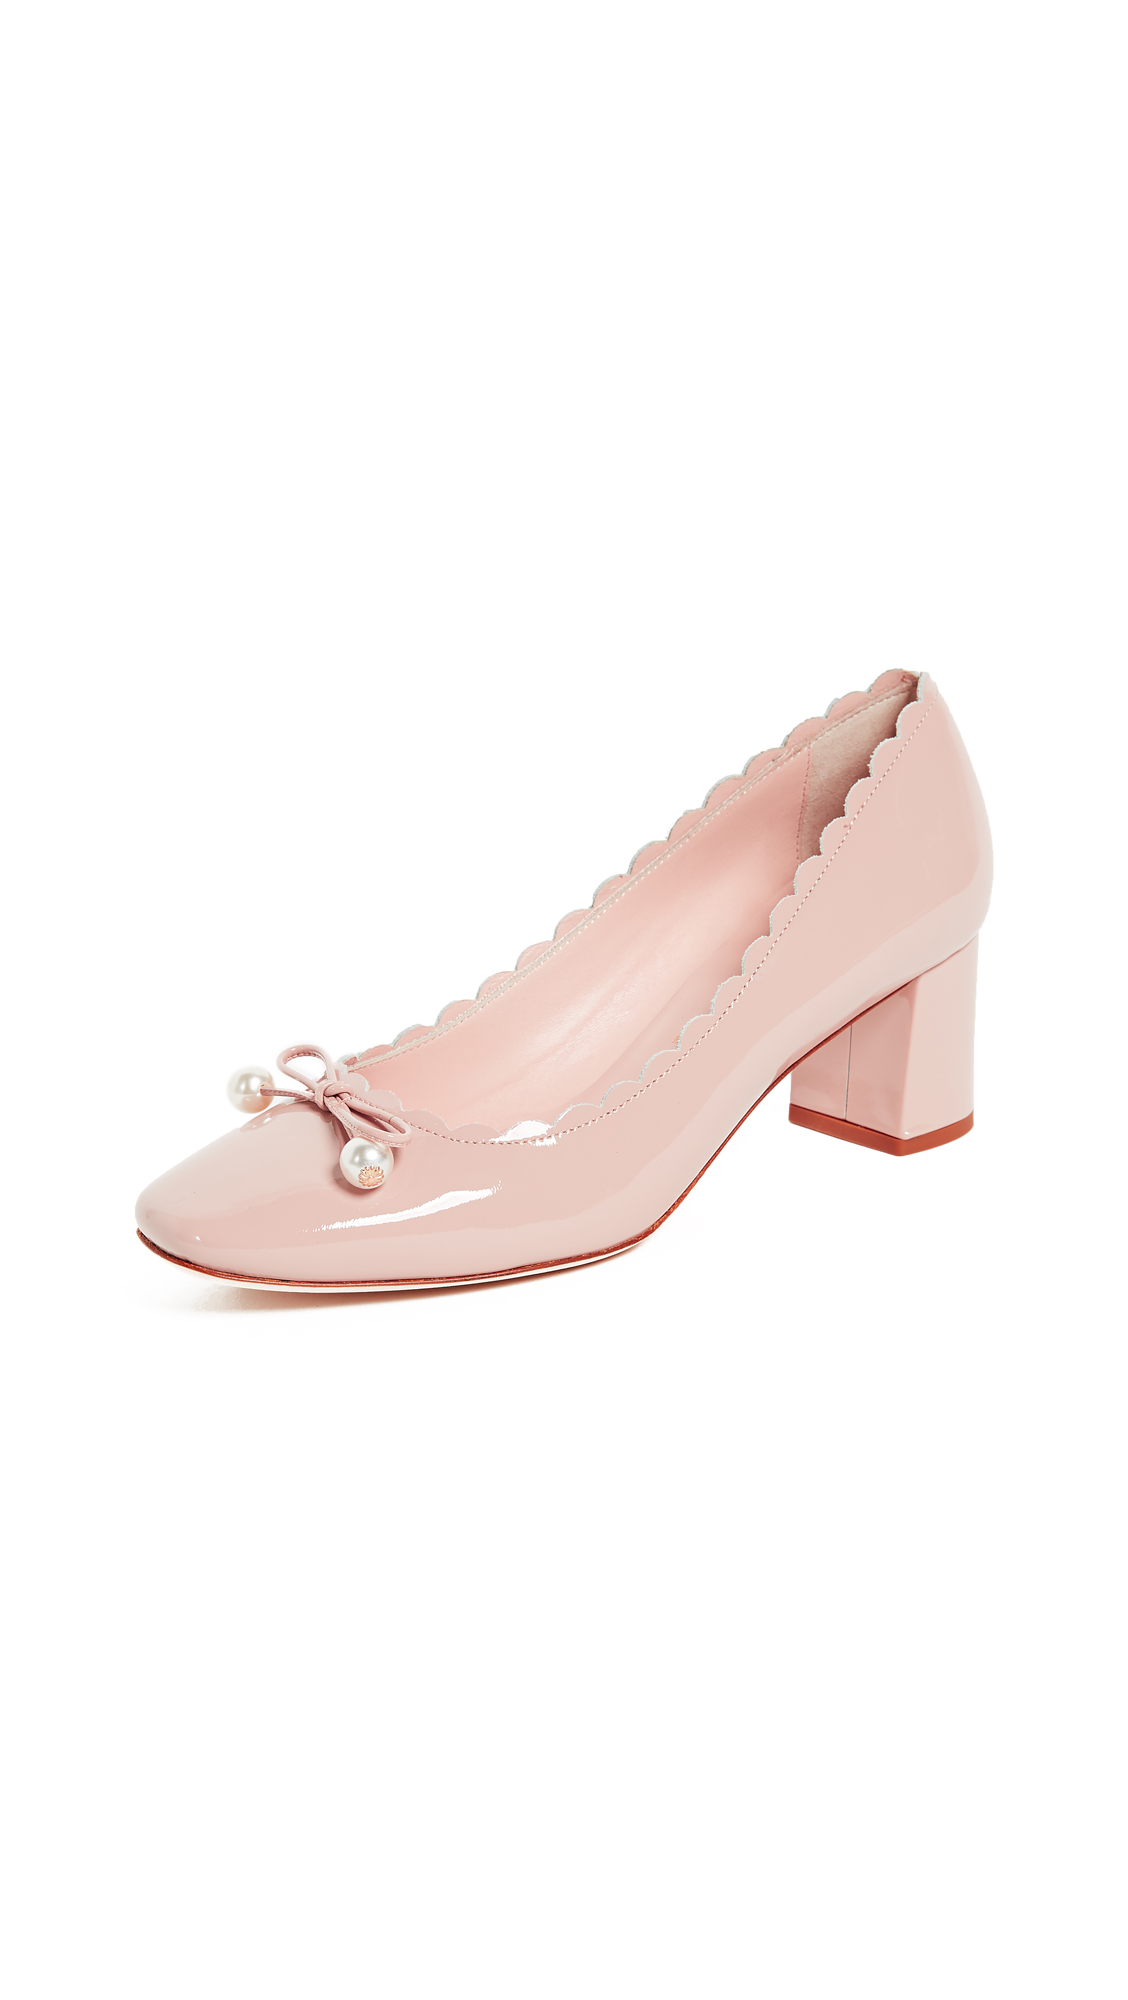 Kate Spade New York Danielle Block Heel Pumps - Pale Pink